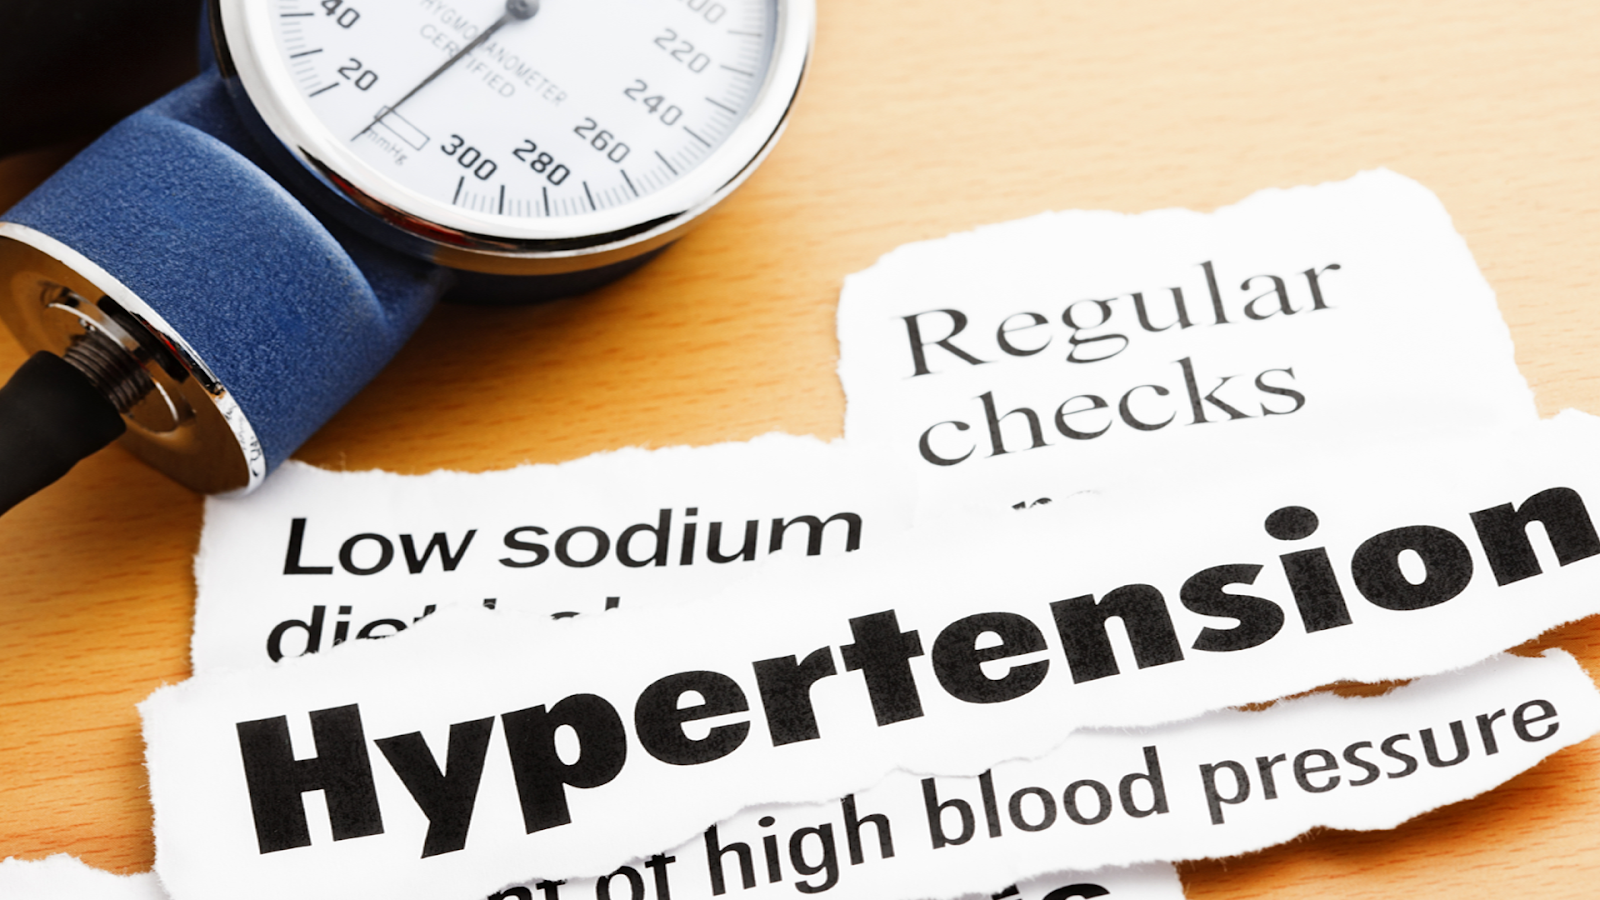 Here is a perfect solution for all your hypertensive problems